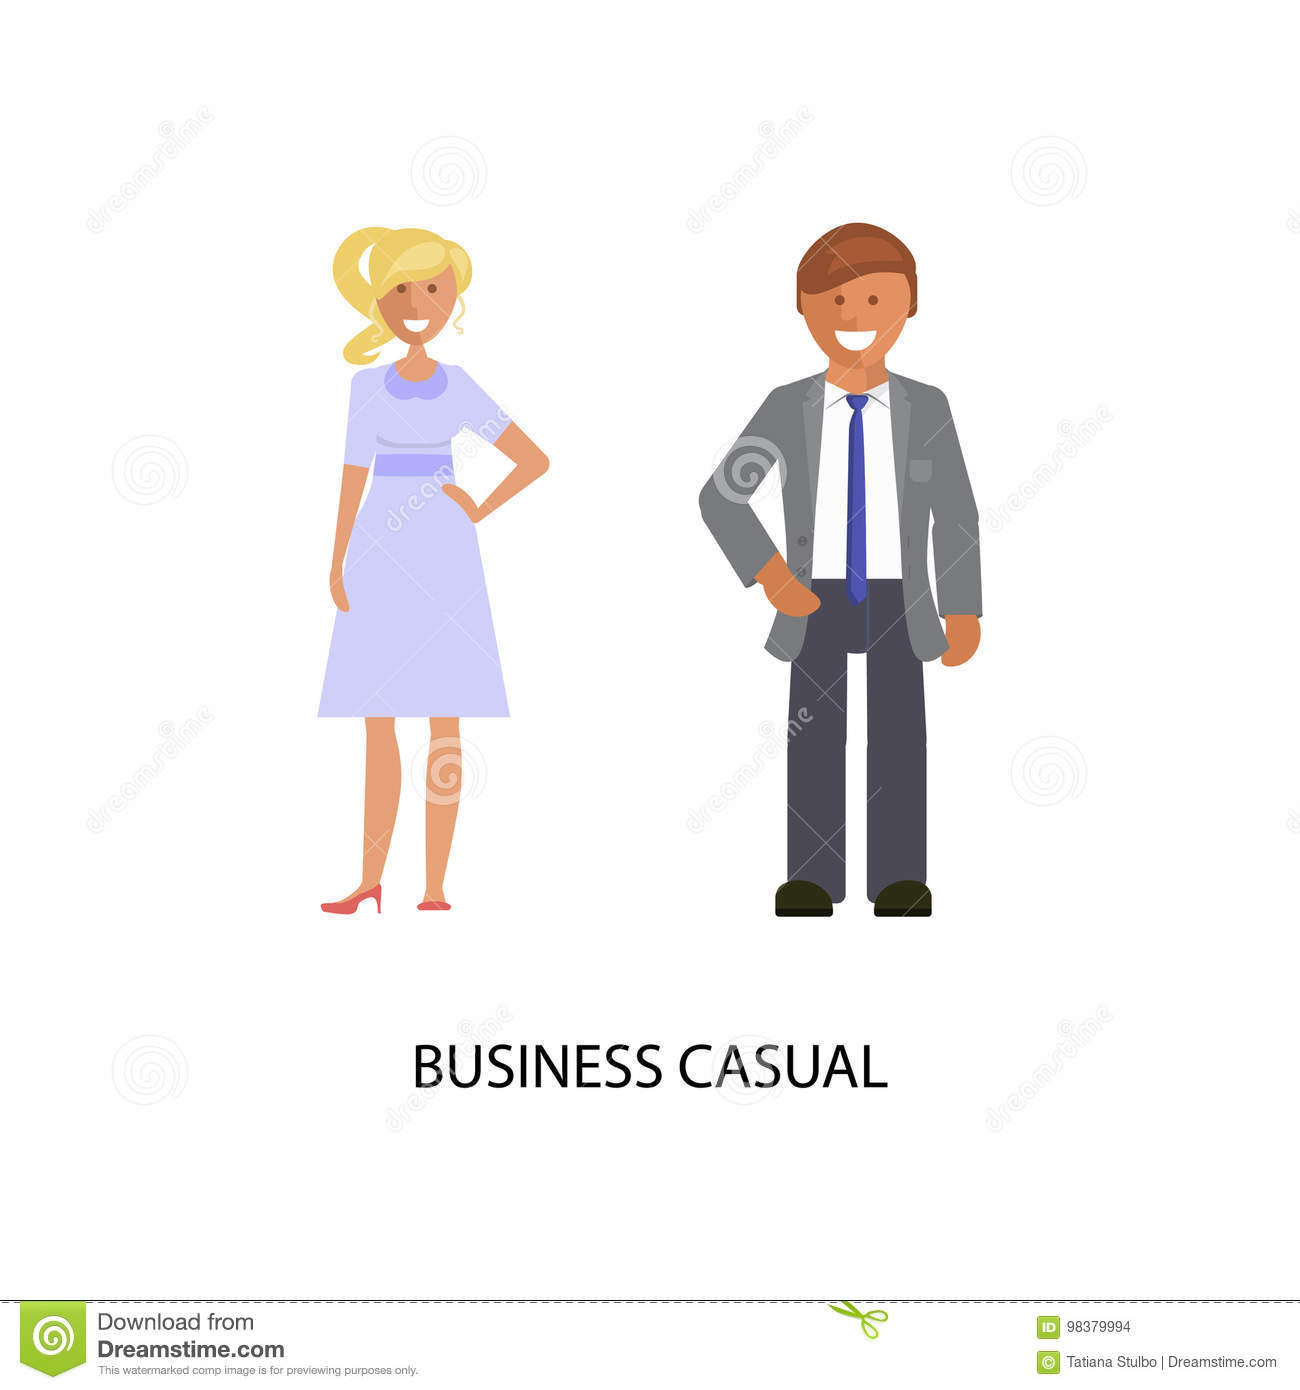 c1904290953c Business dress code. Man and woman in business casual style suits on white  background. Vector illustration of people in formal clothes.r